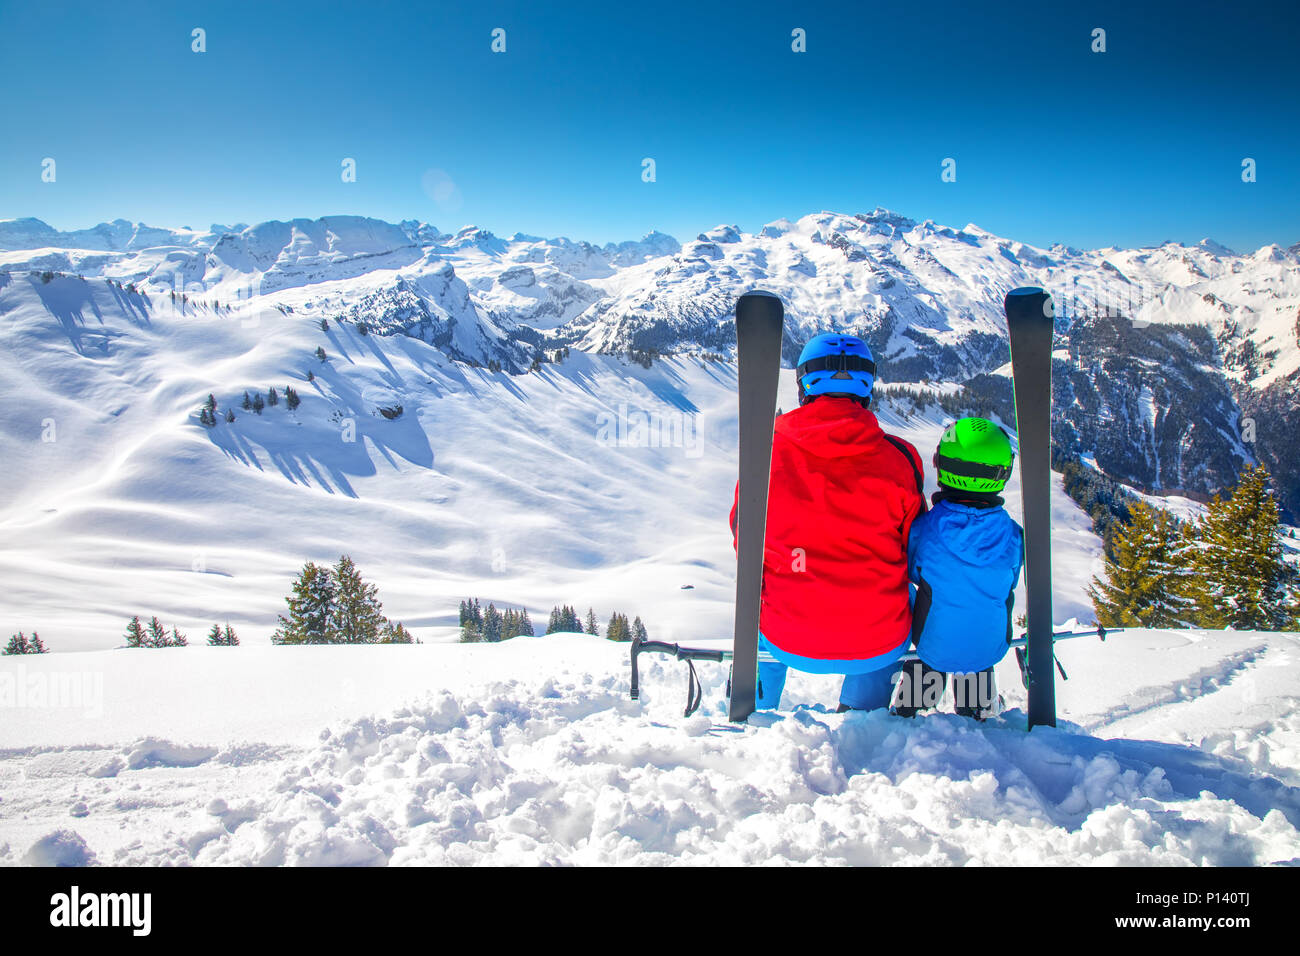 Father with his son skiing and enjoying the view of Swiss Alps, Hoch Ybrig, Switzerland, Europe. - Stock Image